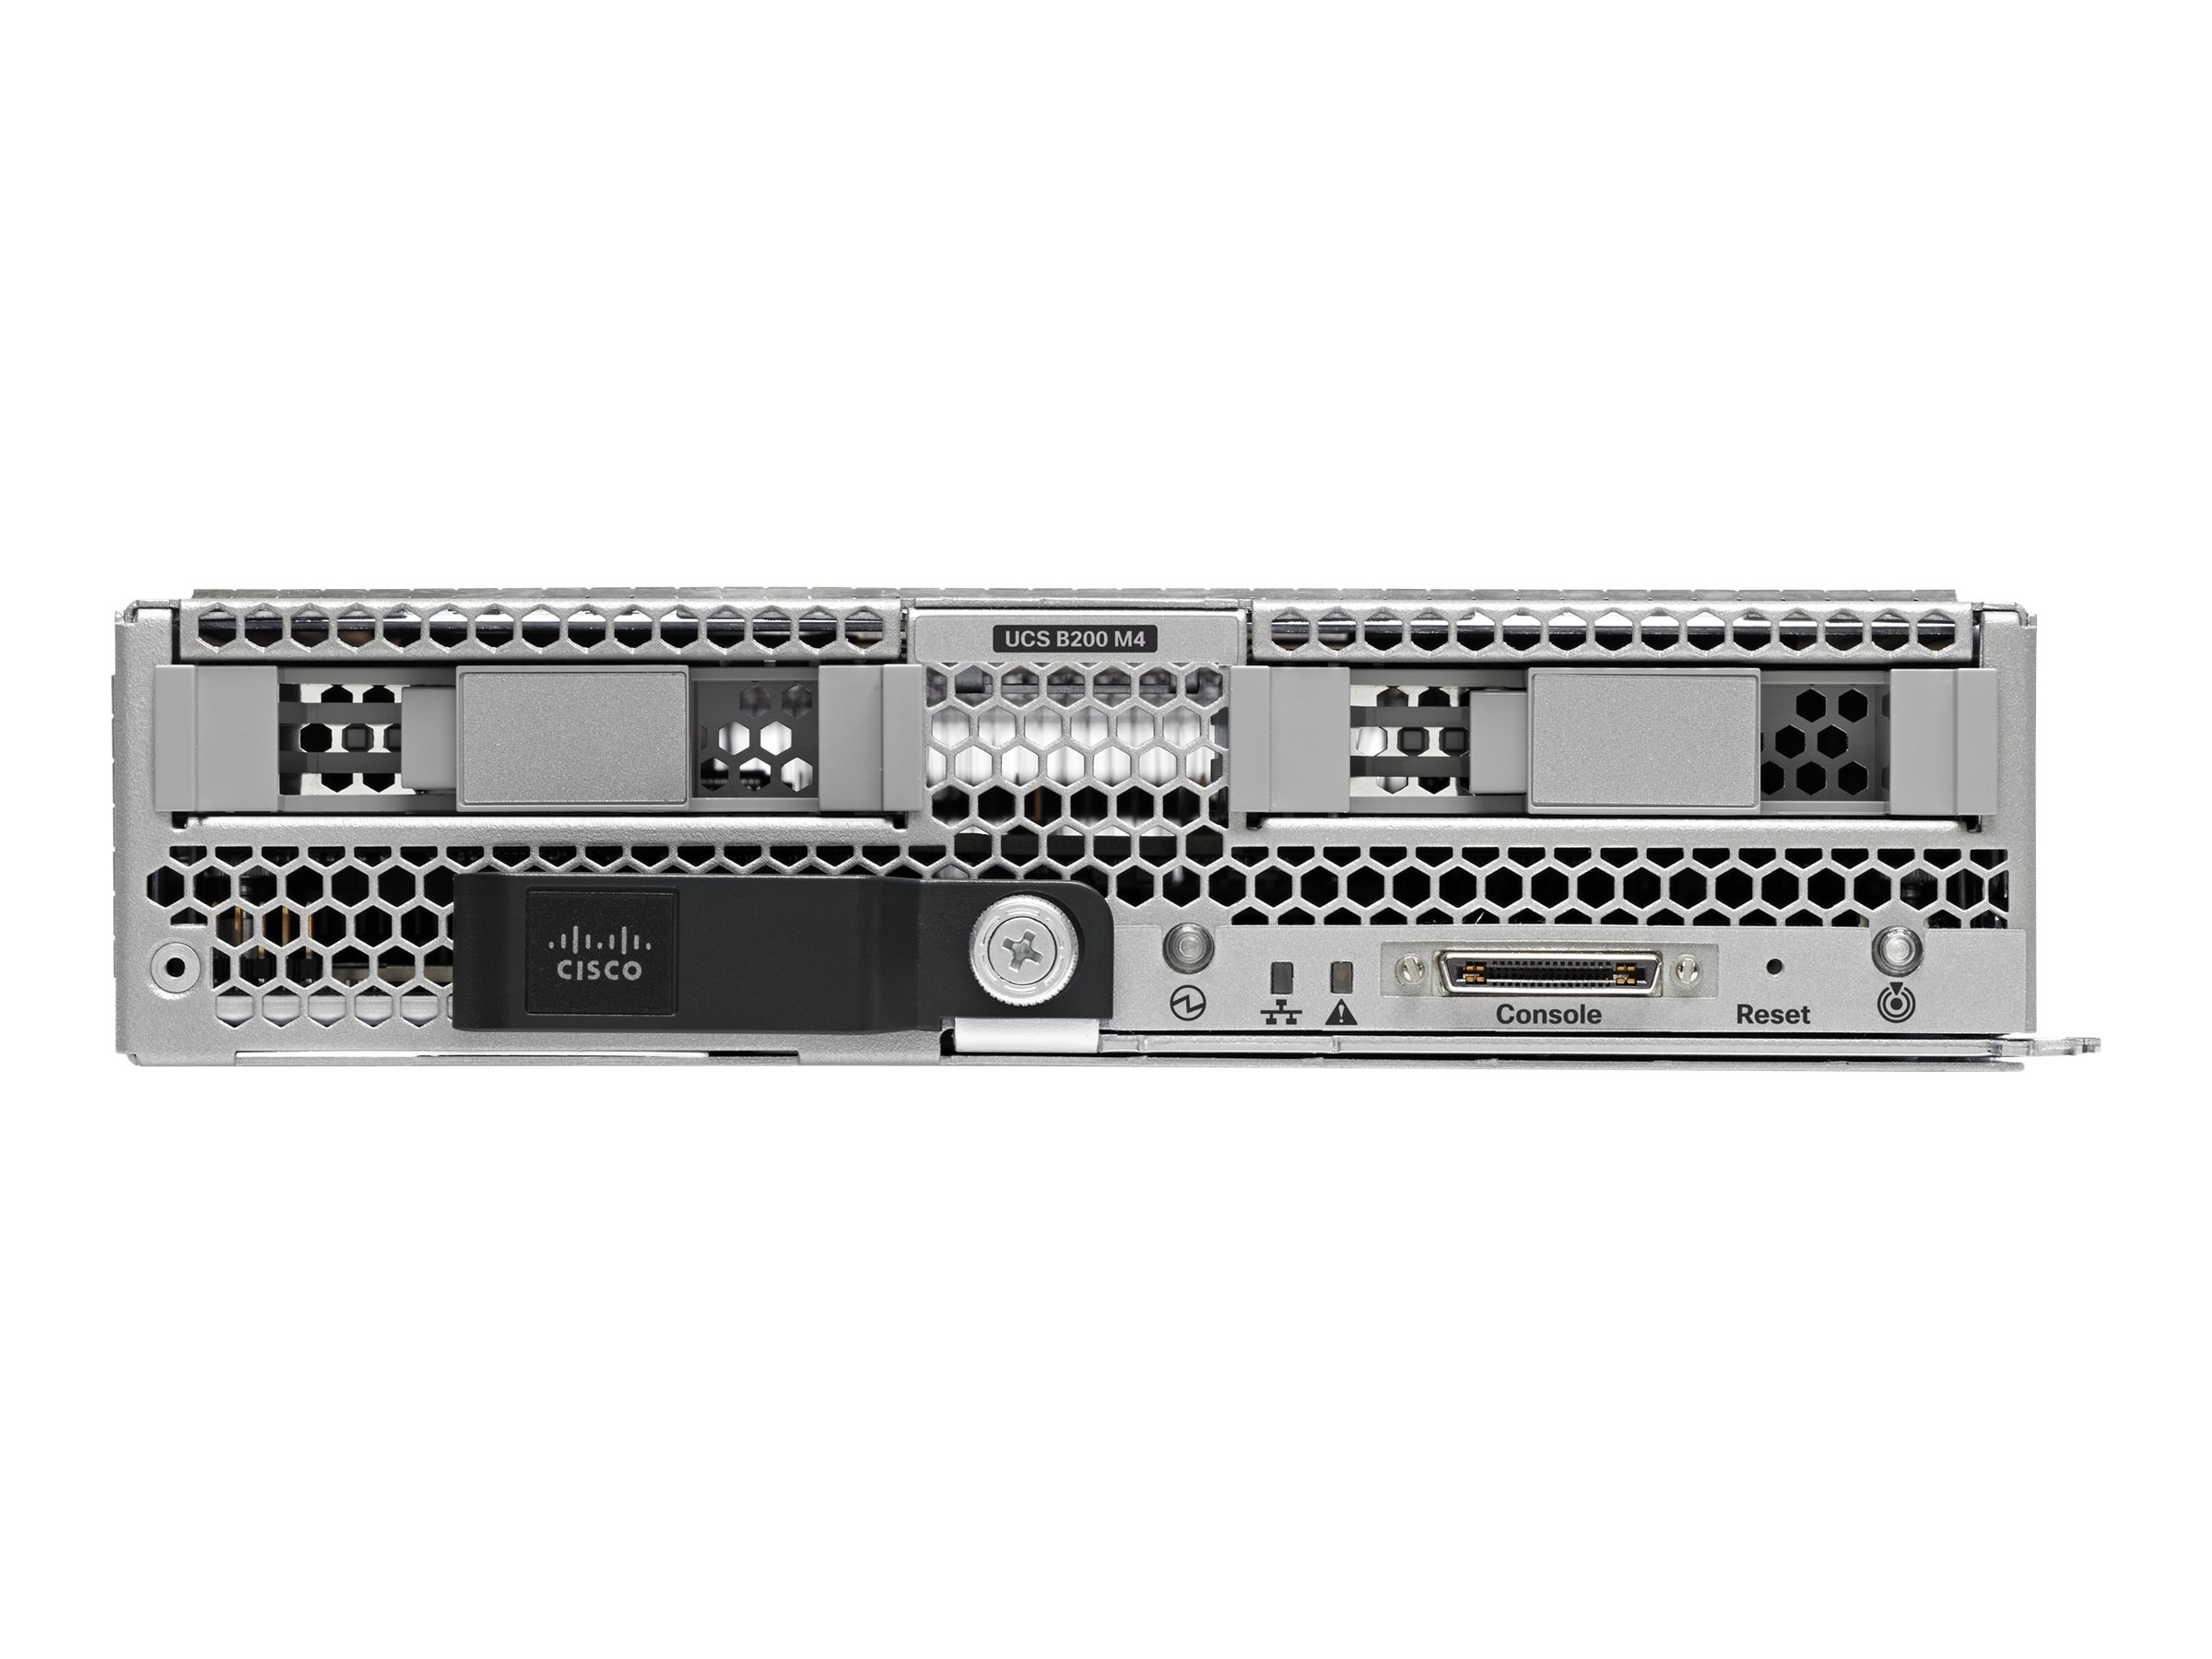 Cisco B200 M4 Hi Core1 (2x)Xeon E5-2698 v3, UCS-SP-B200M4-C1, 30824238, Servers - Blade